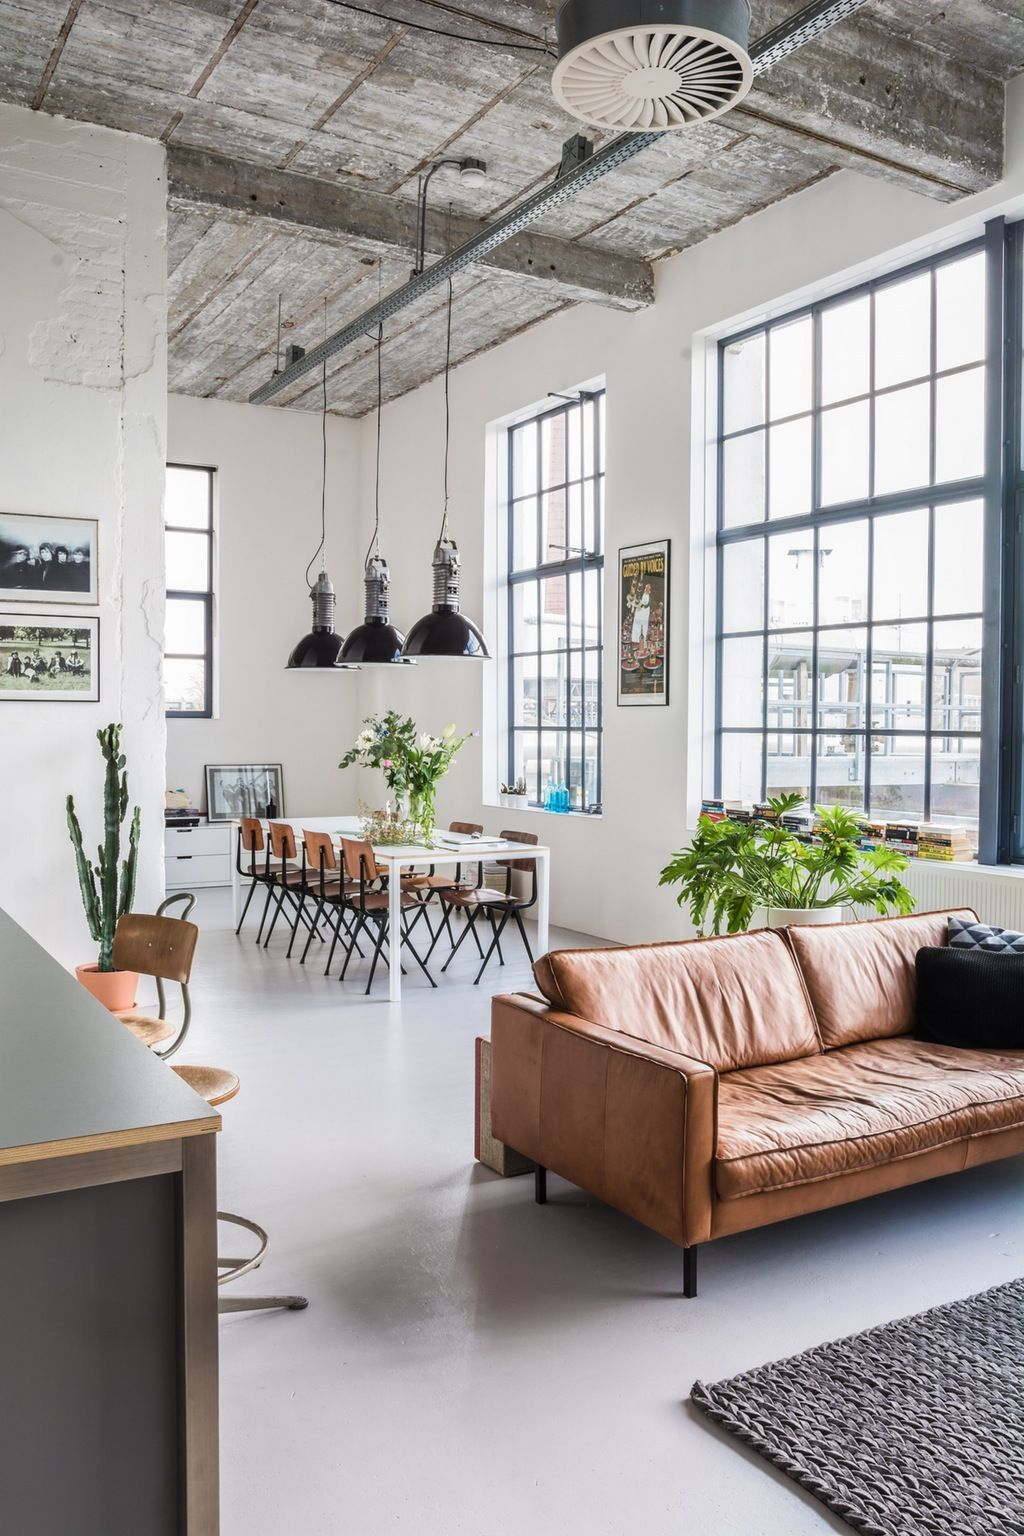 Feel Inspired With These New York Industrial Lofts | Pinterest ...